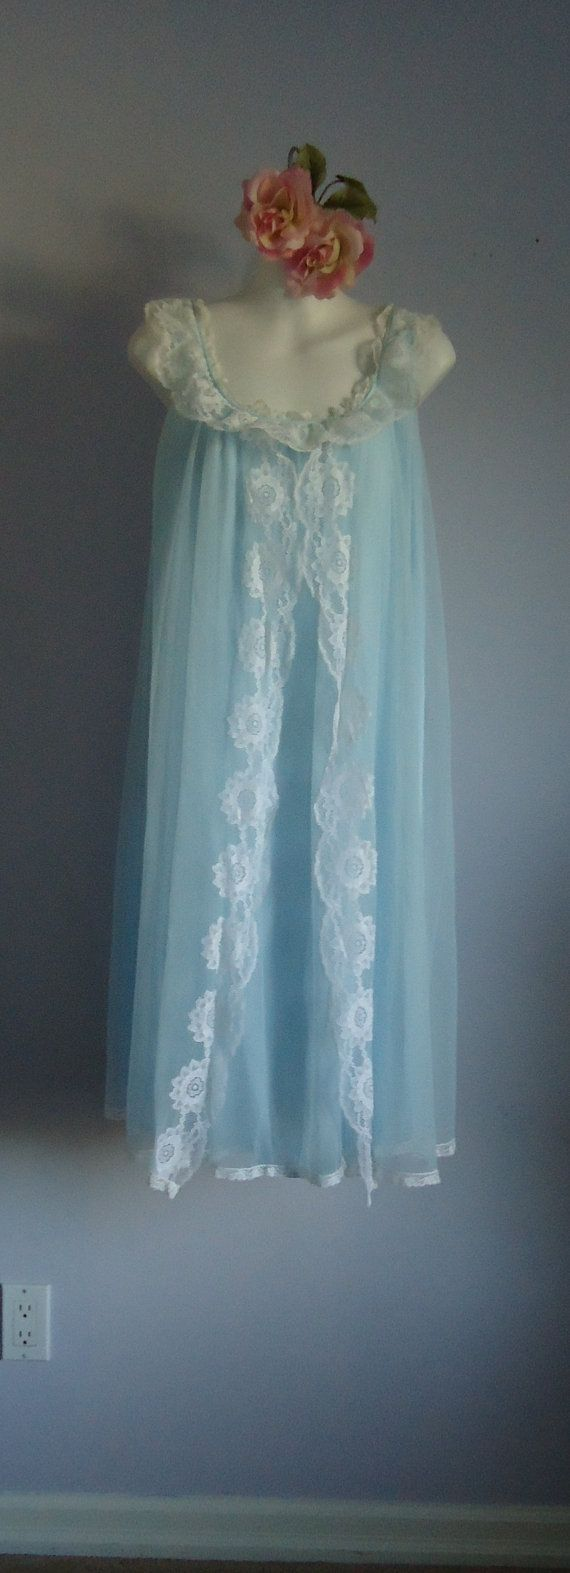 Hey, I found this really awesome Etsy listing at https://www.etsy.com/listing/80815342/vintage-nightgown-vintage-nightgowns